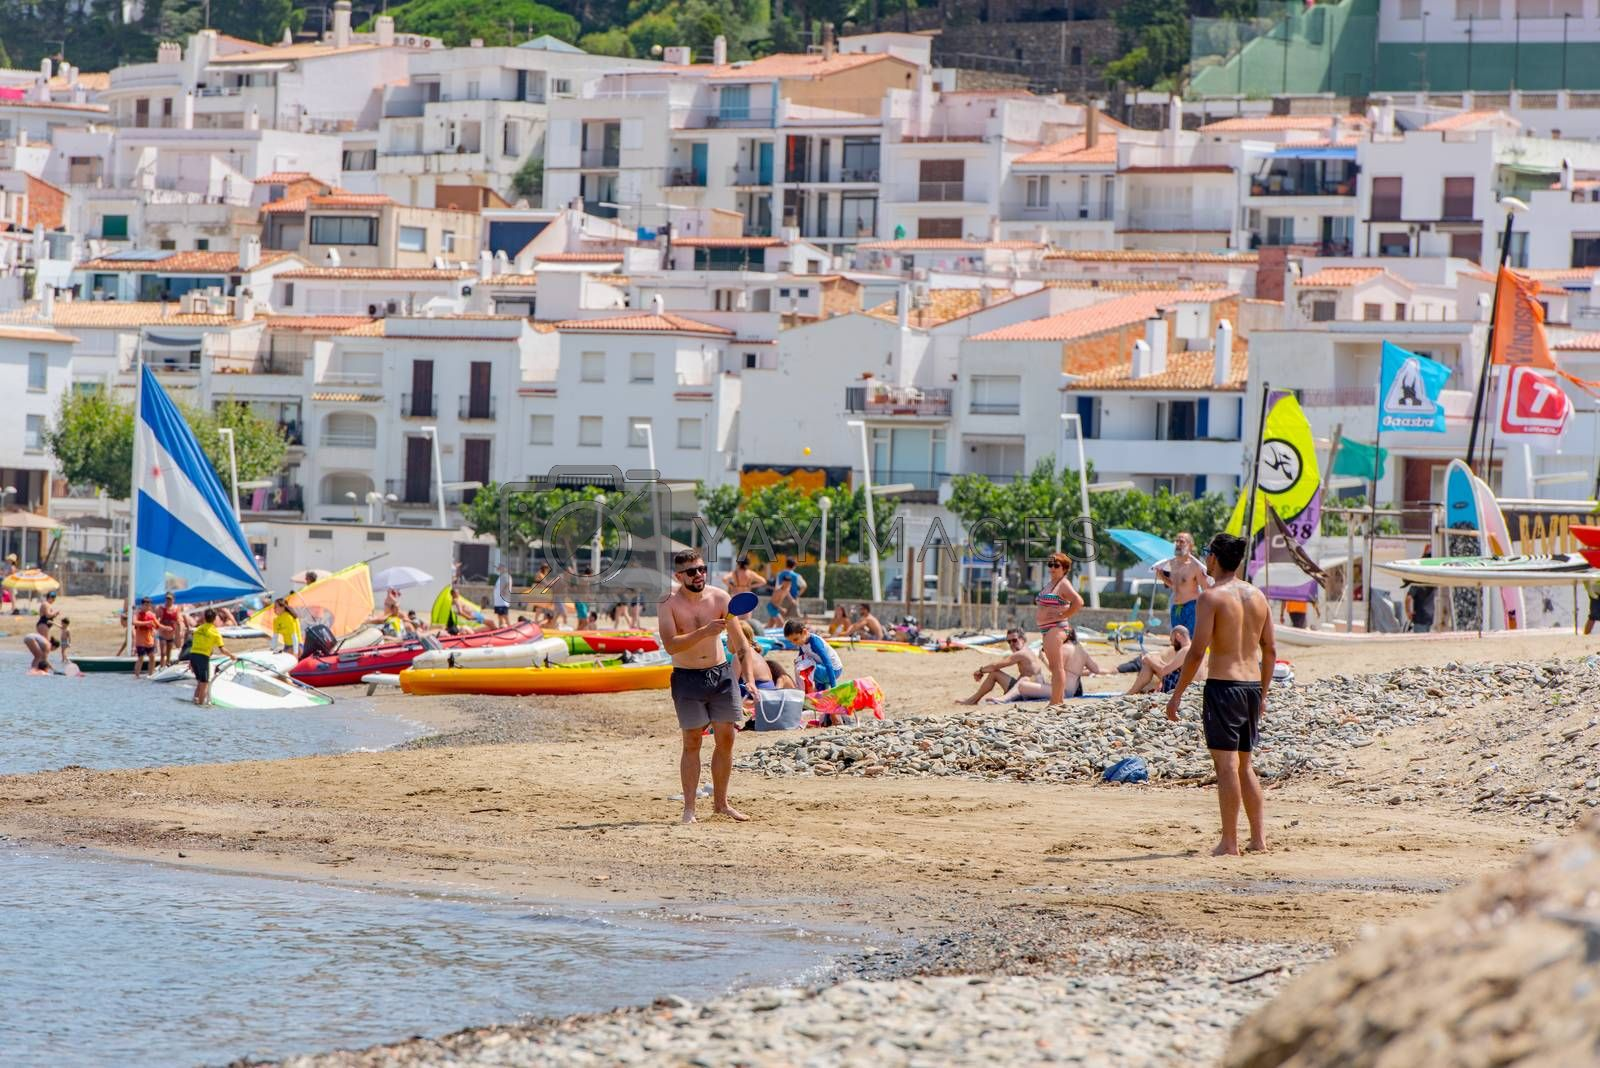 Port de la Selva, Spain : 9 July 2020 : People in the beach of Port de la Selva, one of the most touristic villages of Costa Brava, on August 9, 2013, in Port de la Selva, Catalonia, Spain.